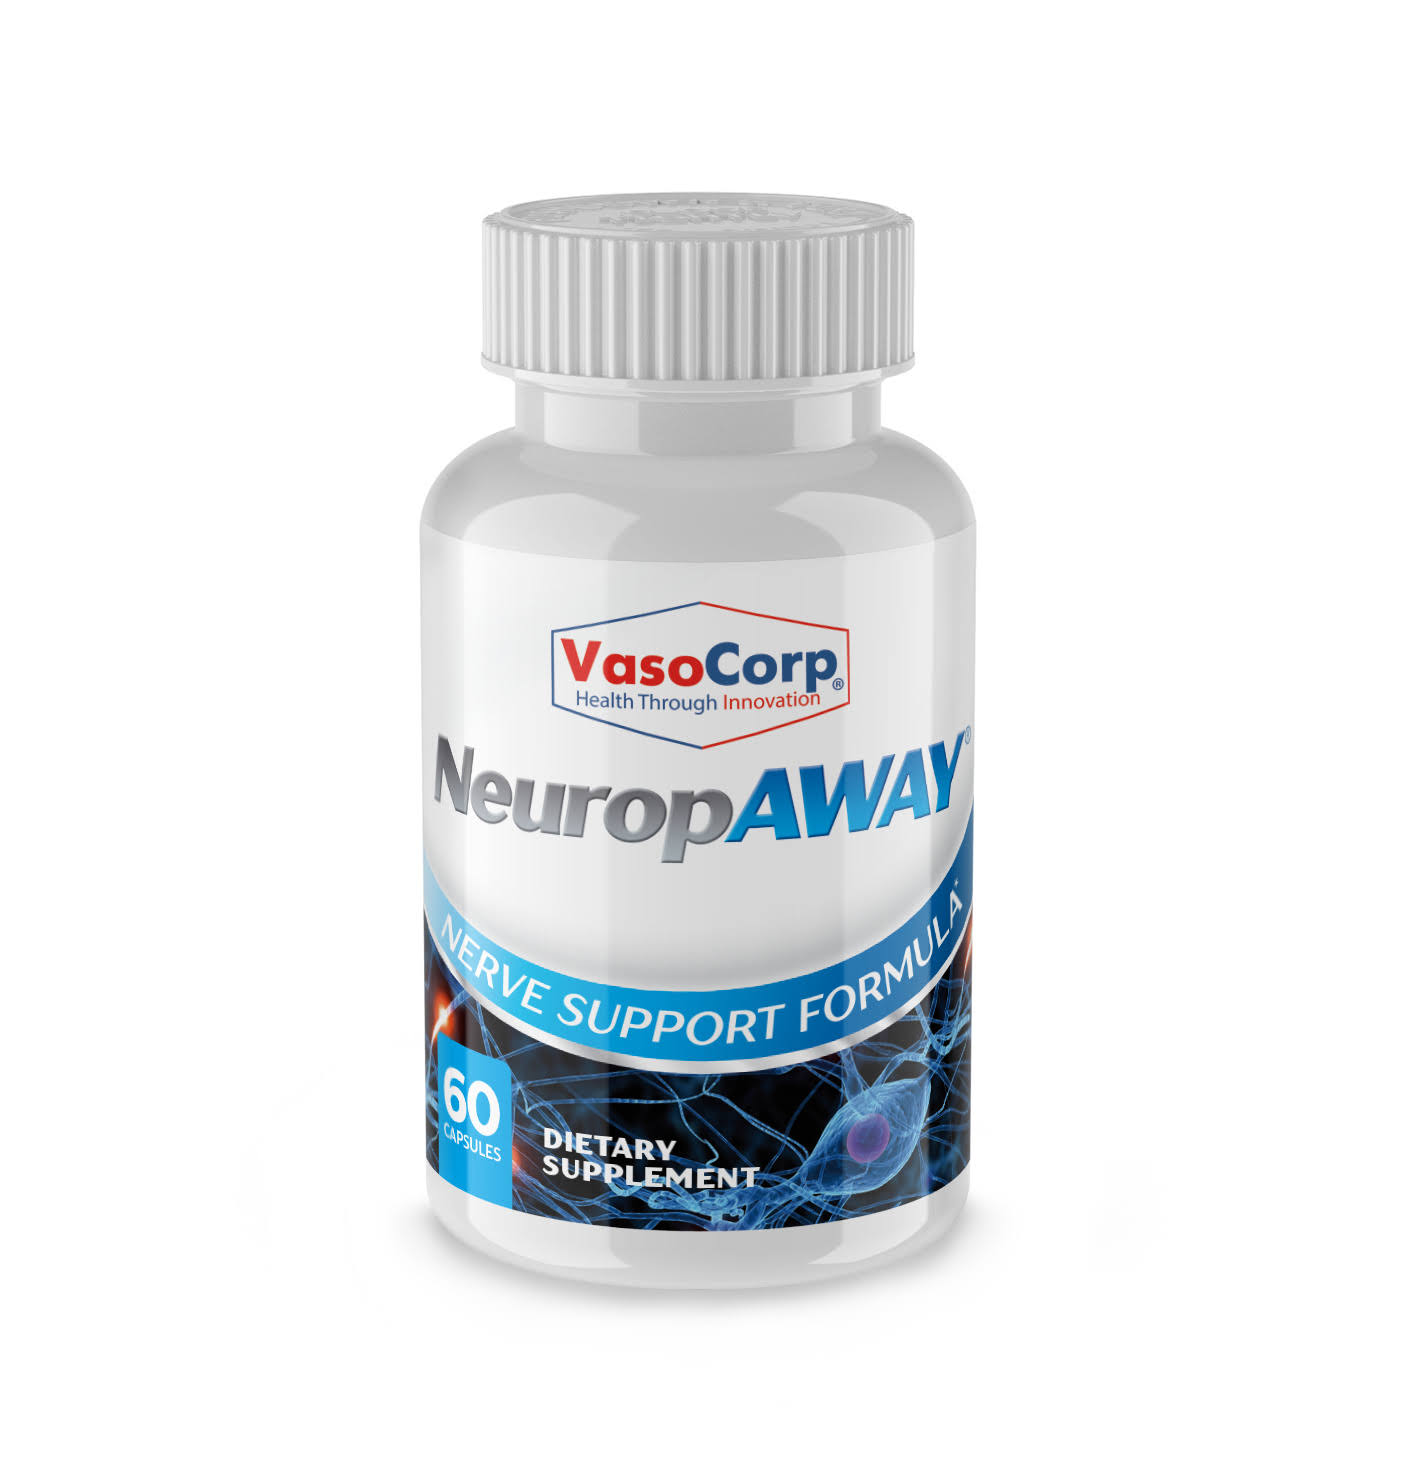 Vasocorp Neuropaway Nerve Support Formula Dietary Supplement - 60 Capsules